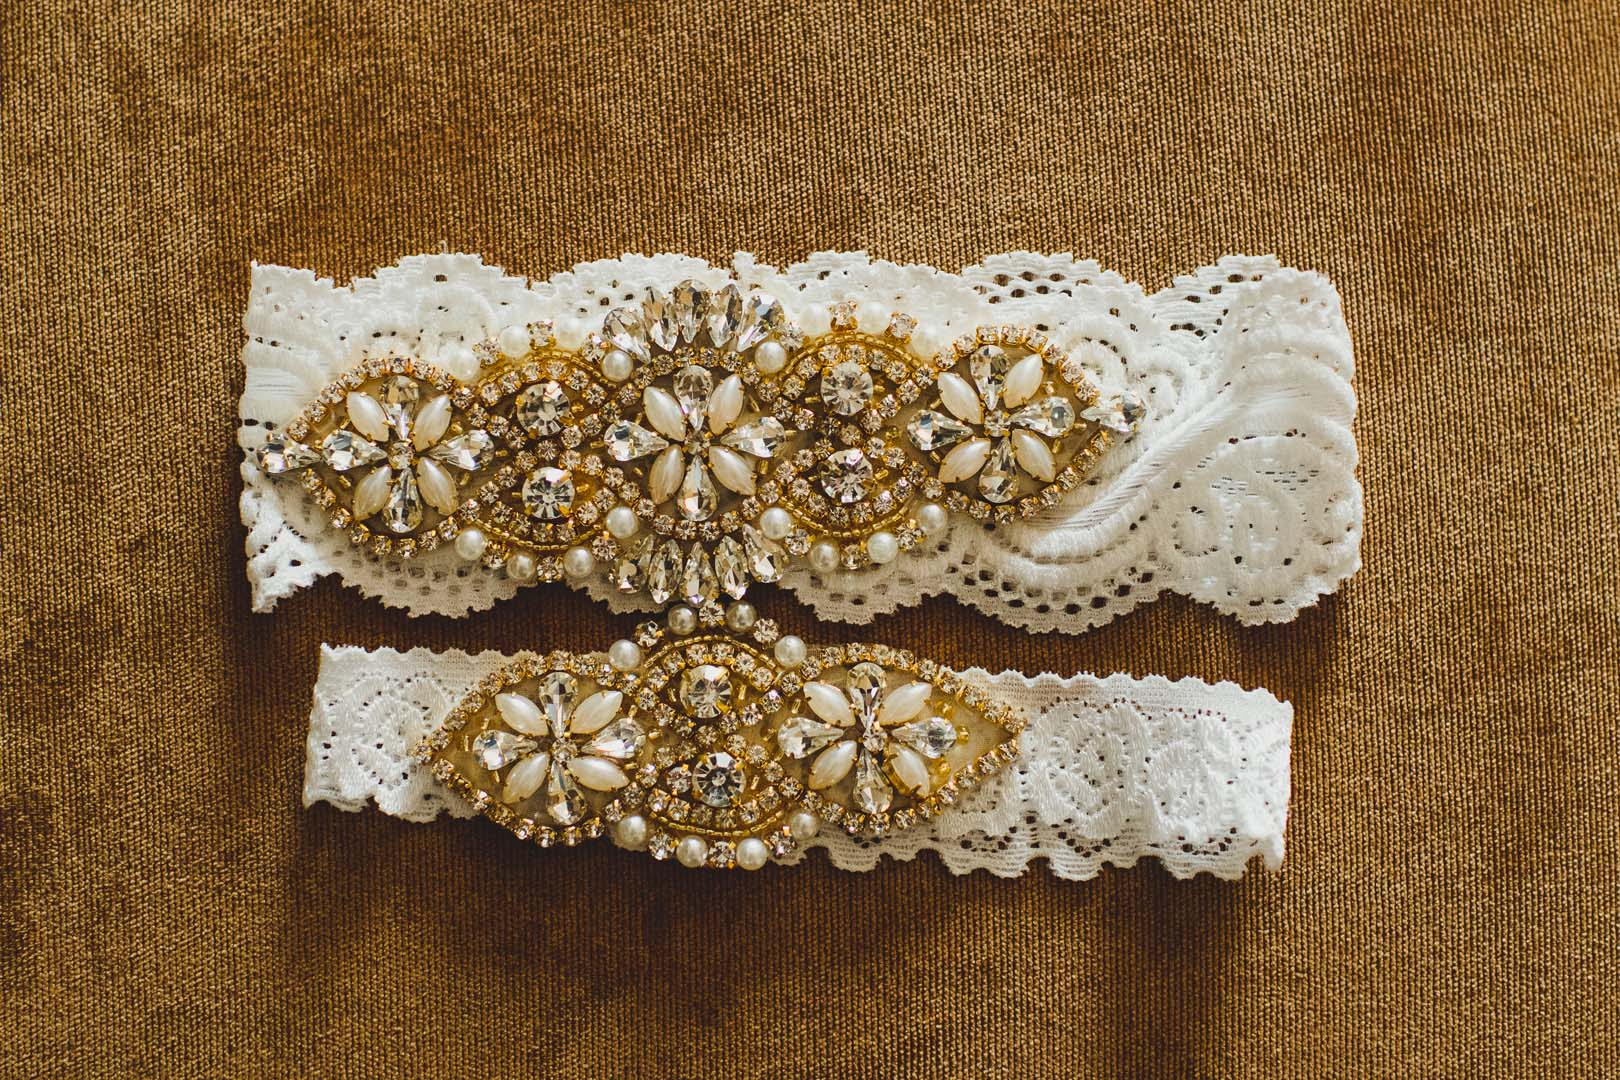 Photo Session of brides details before her wedding ceremony. This was the garter she was wearing before the garter toss. The wedding took place at Villa del Palmar, in Los Cabos, Mexico. Wedding Planning was done by Cabo Wedding Services.